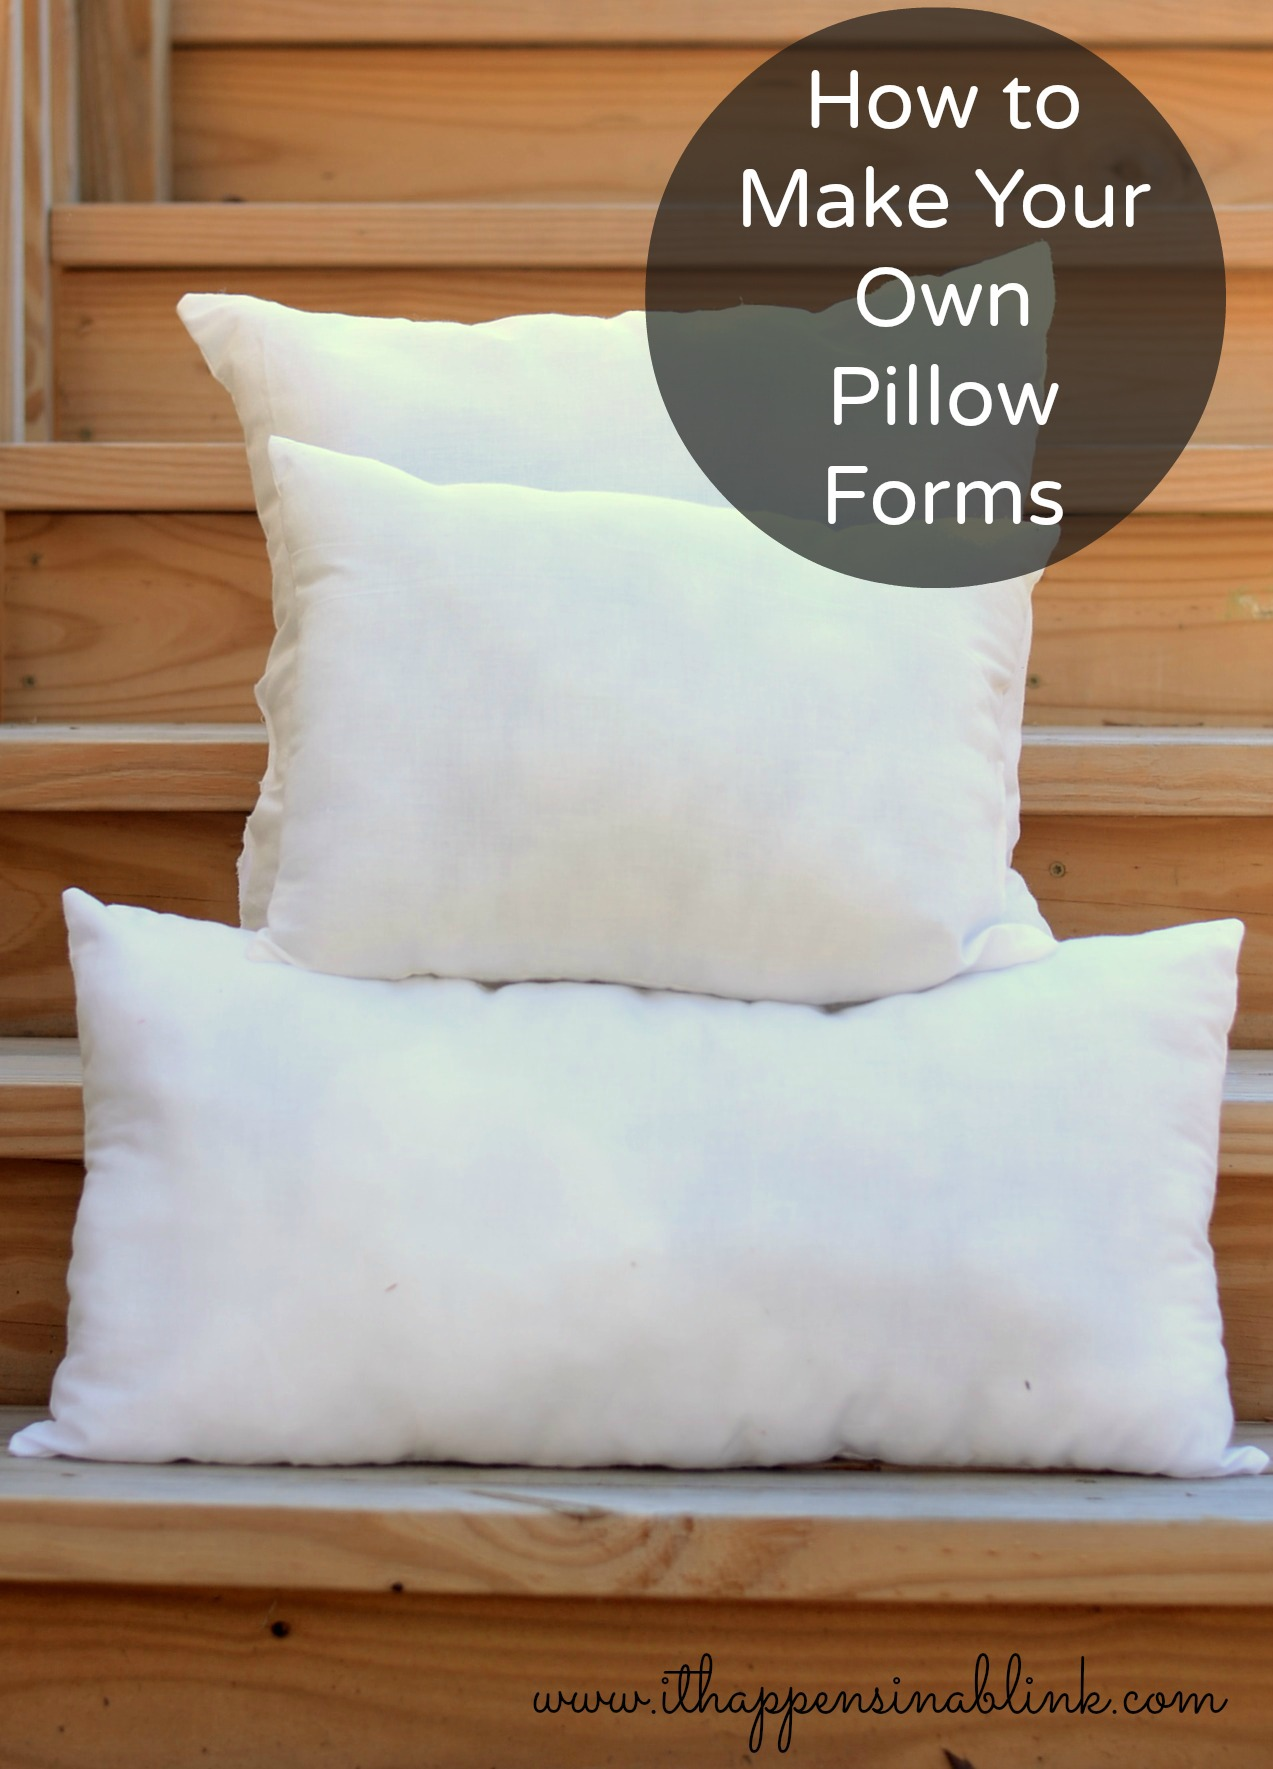 How to Make Your Own Pillow forms from It Happens in a Blink